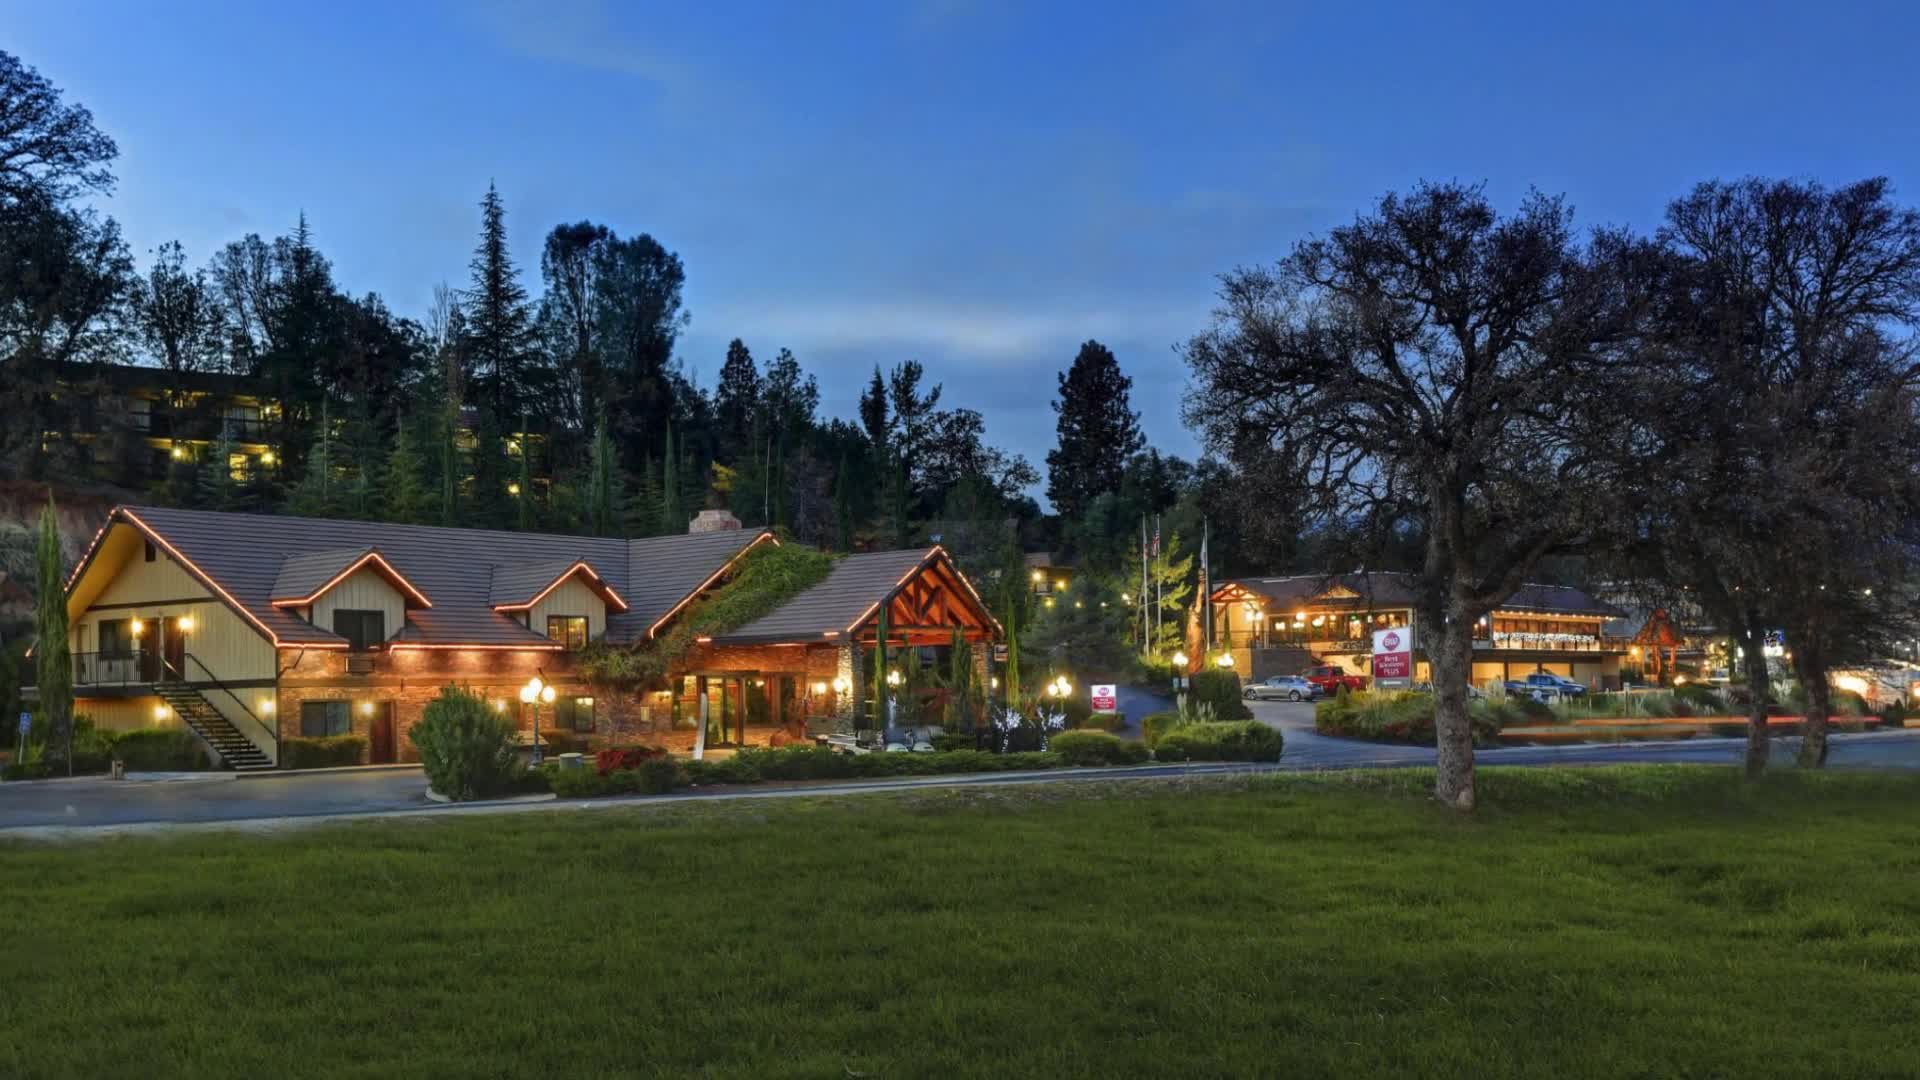 Hotel Photo Gallery Best Western Plus Yosemite Gateway Inn